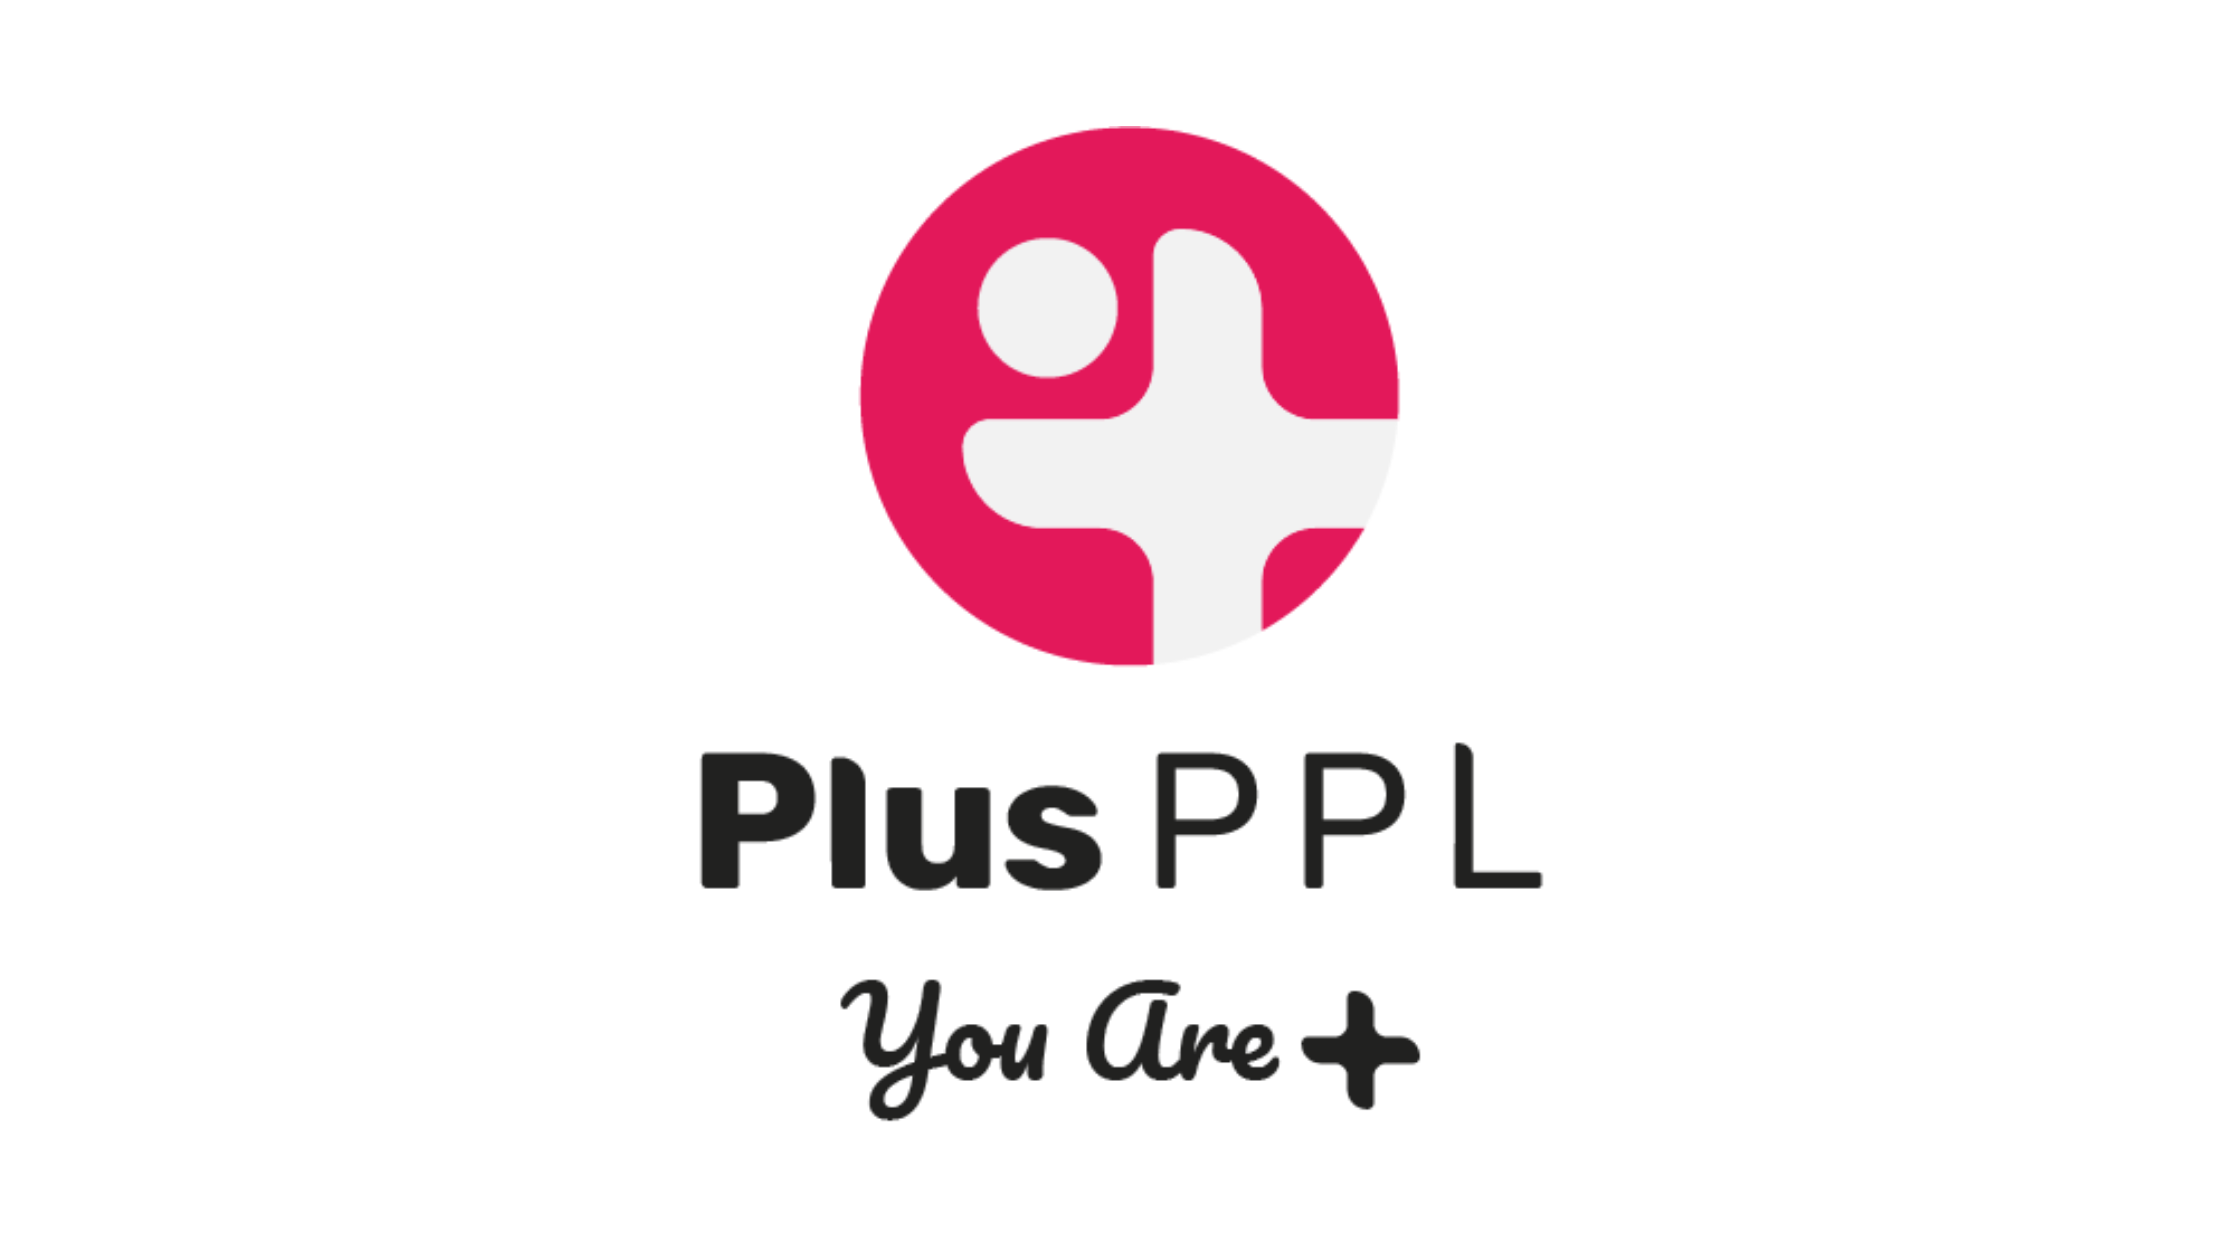 Ecommerce app Plus Ppl will take advantage of Size Ppl's Ai technology to improve its personalization in plus-size fashion